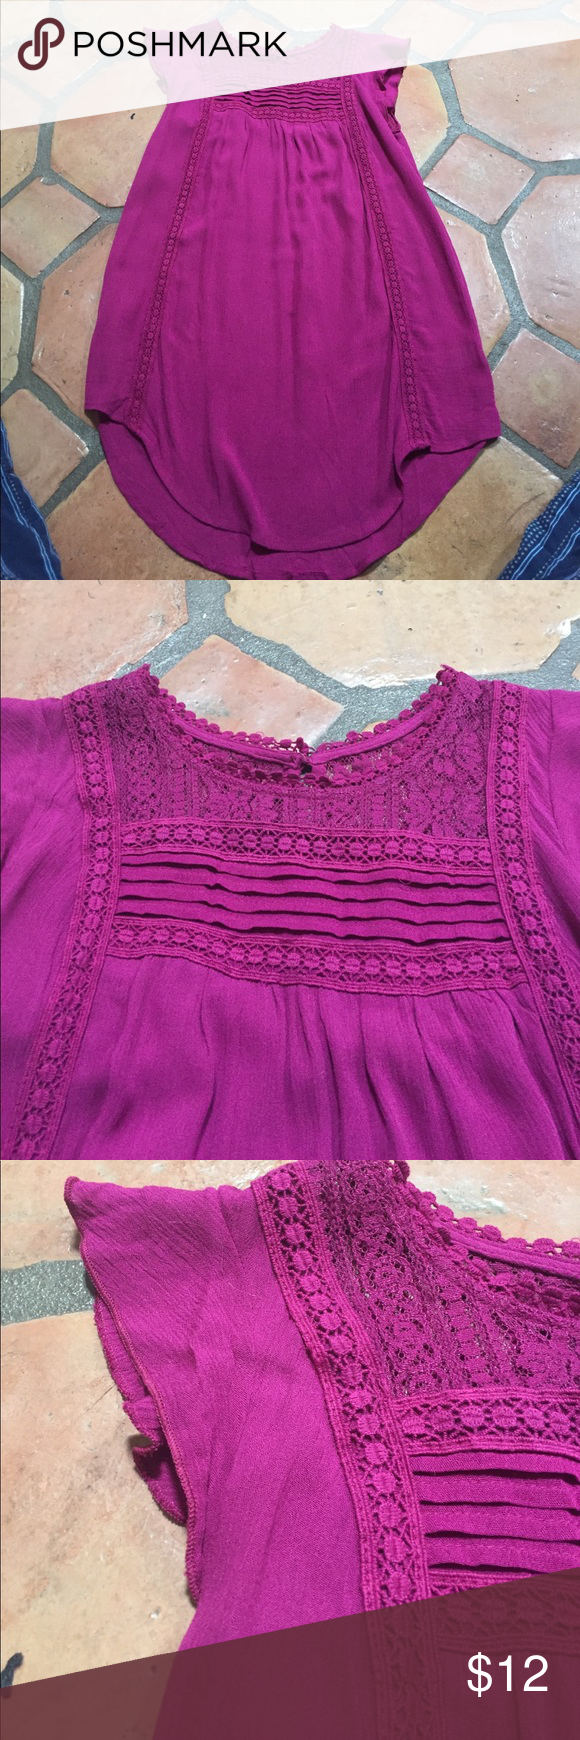 Tunic length sleeveless top Beautiful with dainty details. Worn once. Great color. Xhilaration Tops Blouses